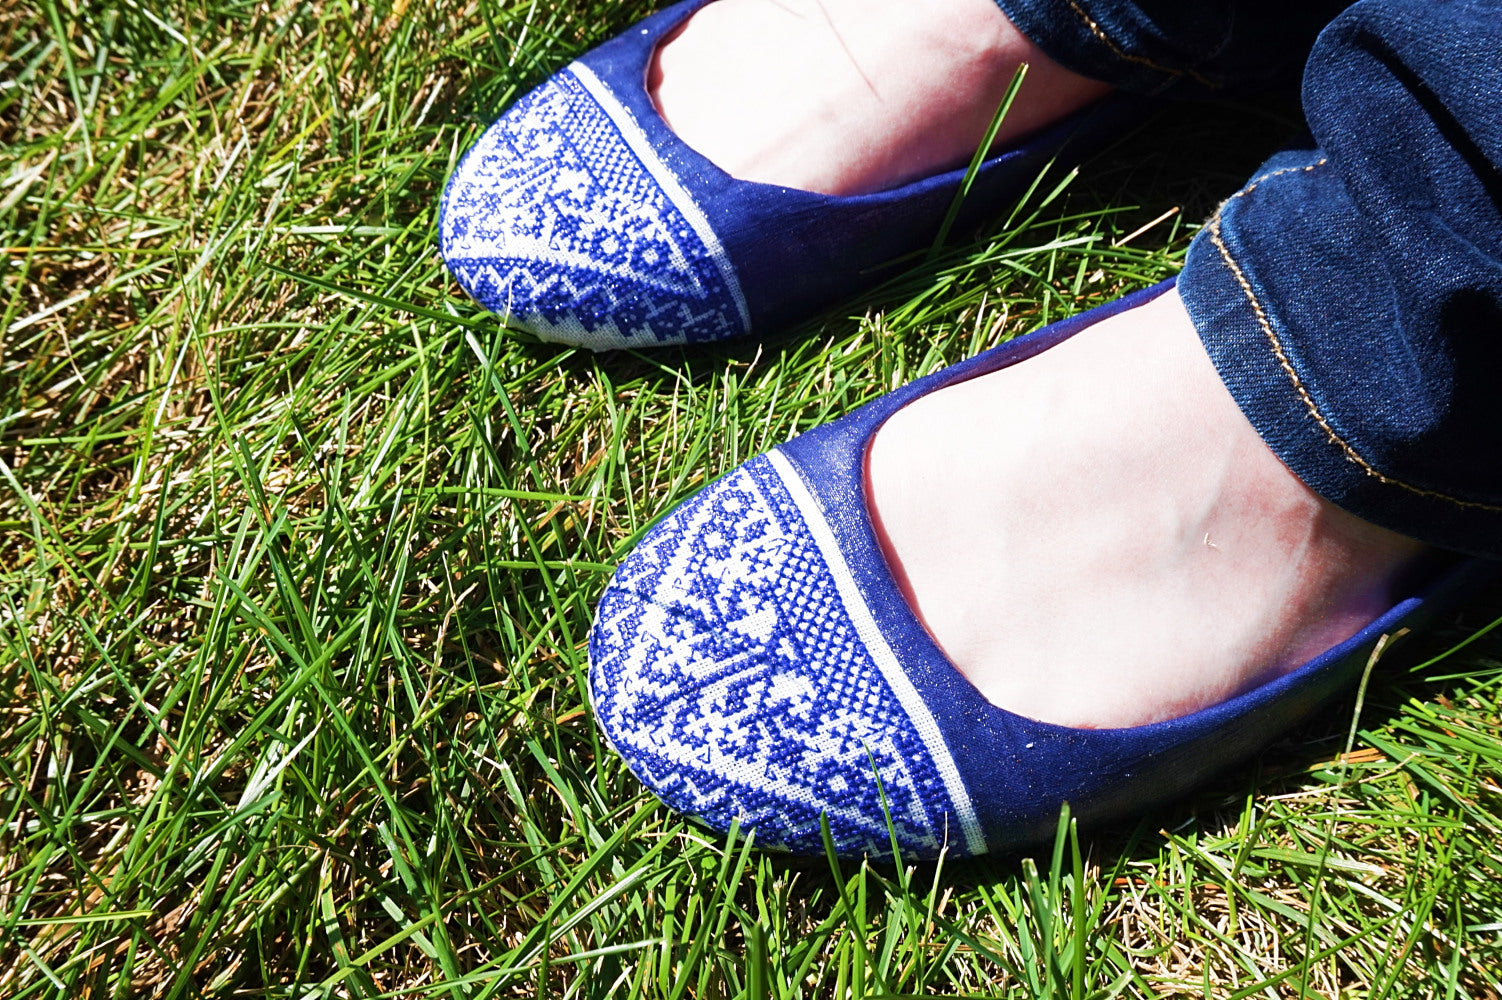 DIY flats covered with cross stitch